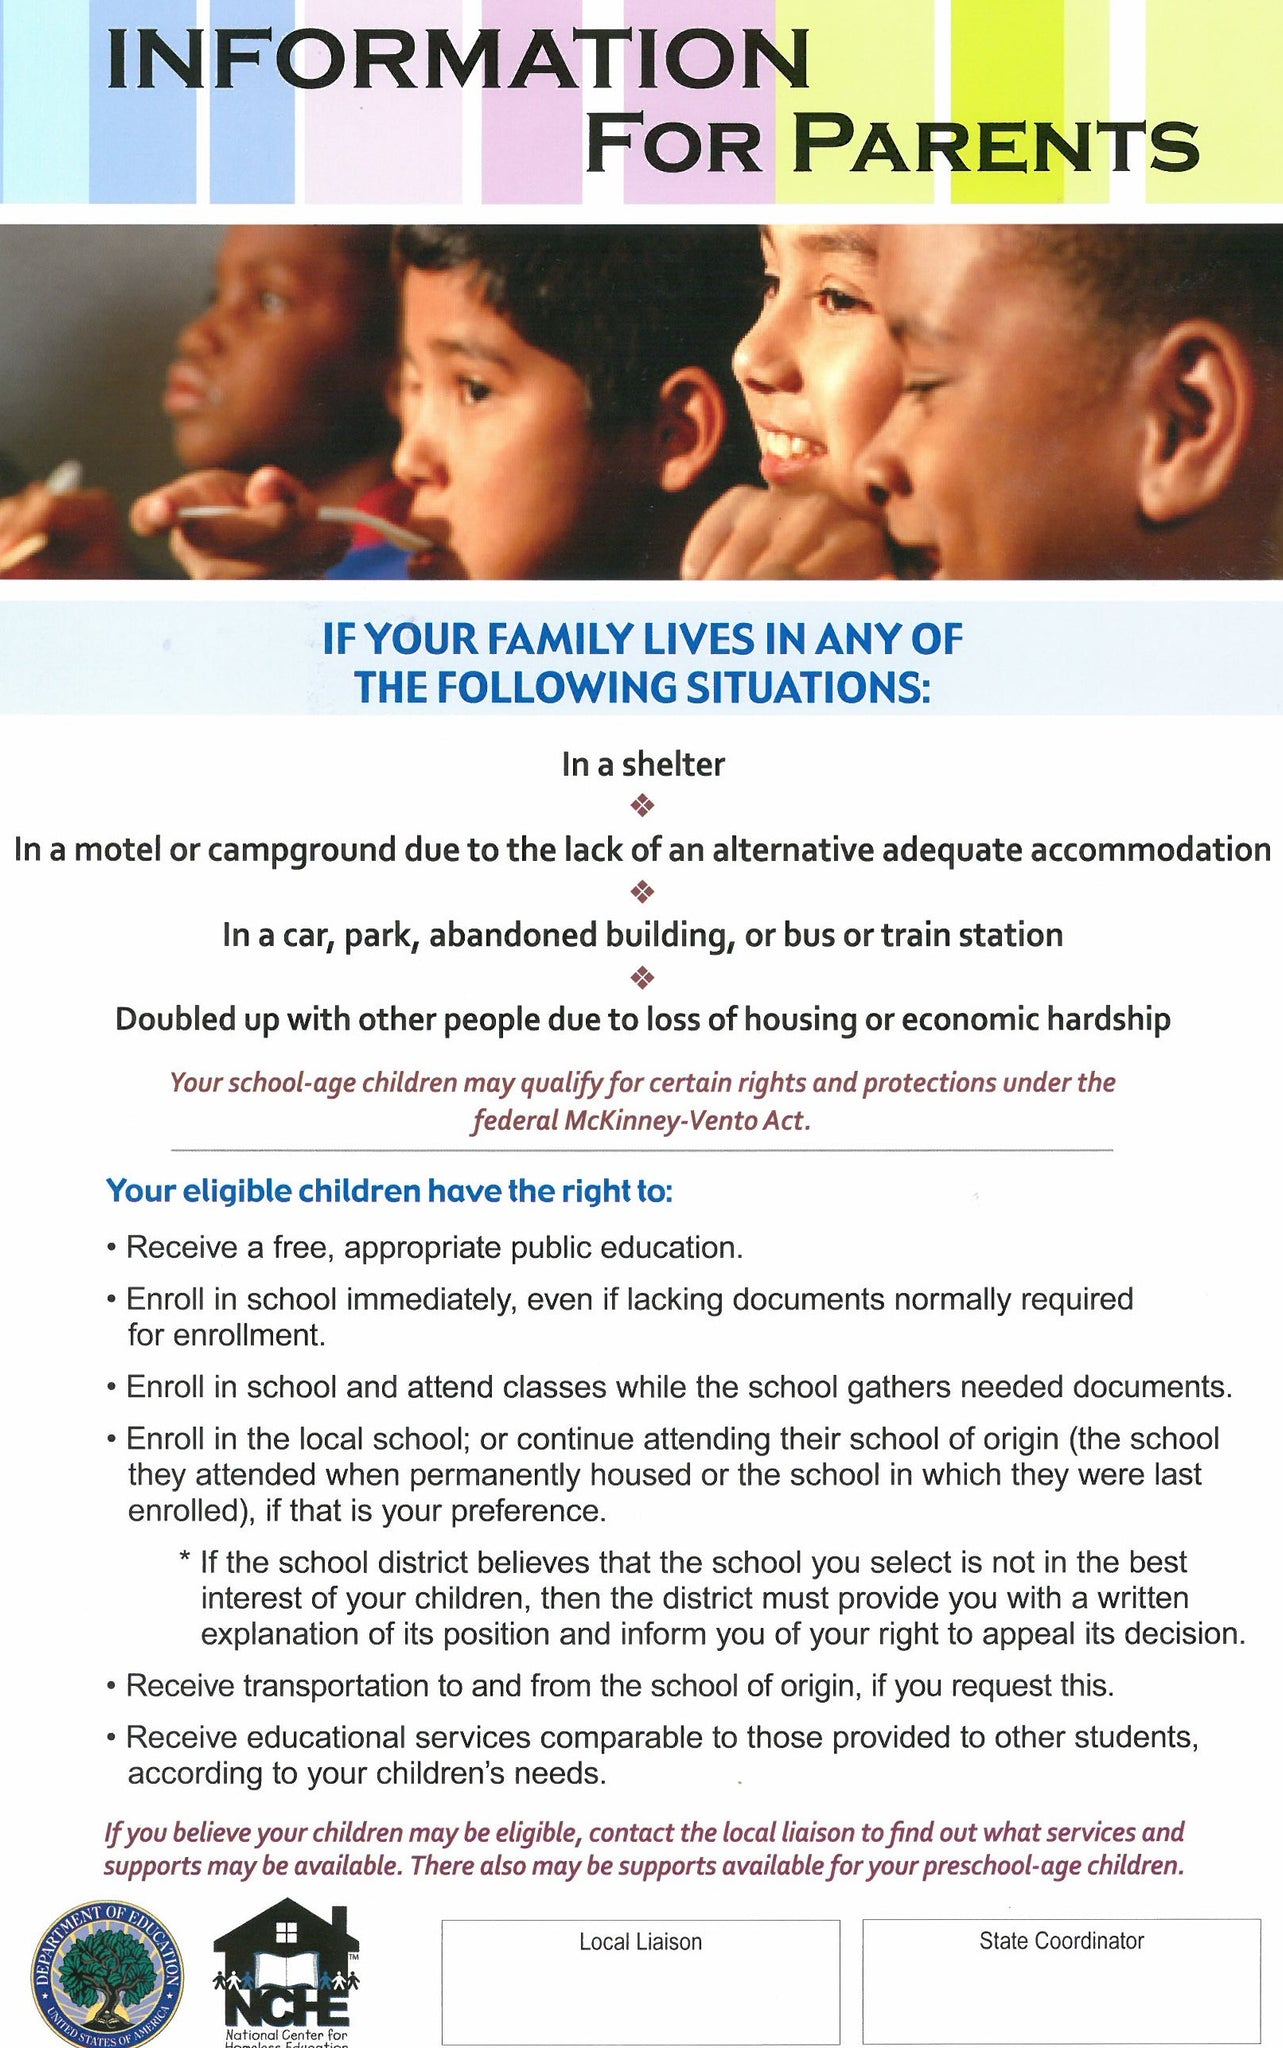 Educational Rights Poster for Parents